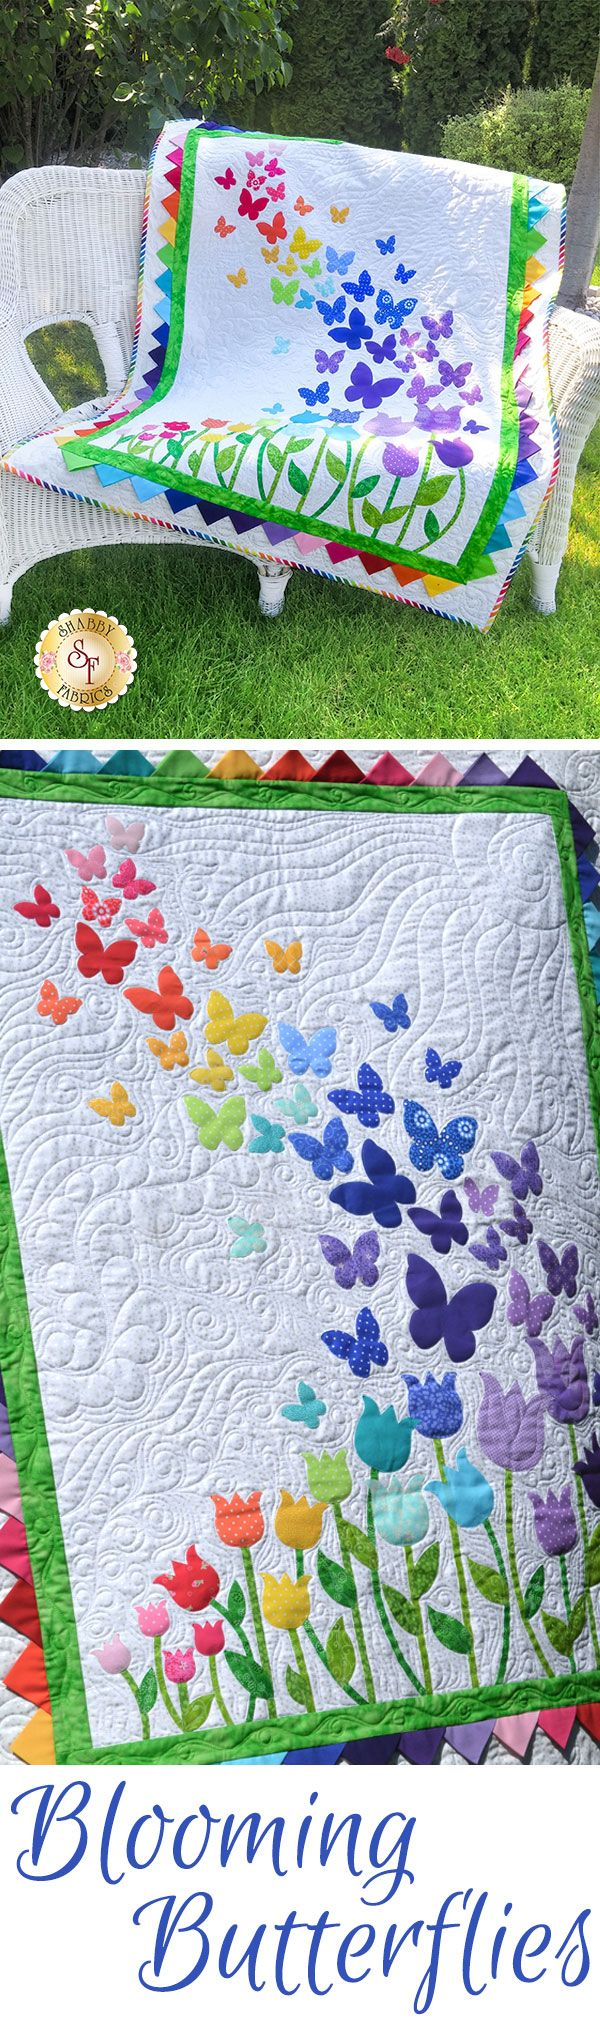 "Blooming Butterflies Quilt Kit  Brighten your little girls room with this darling Blooming Butterflies Quilt! This Shabby Fabrics Exclusive quilt features a beautiful array of butterflies floating on a gentle breeze over a bed of blooming tulips, finished with bright prairie points for the inner border. Finishes to 40½"" x 51½"". All applique shapes are pre-cut and pre-fused for your convenience."